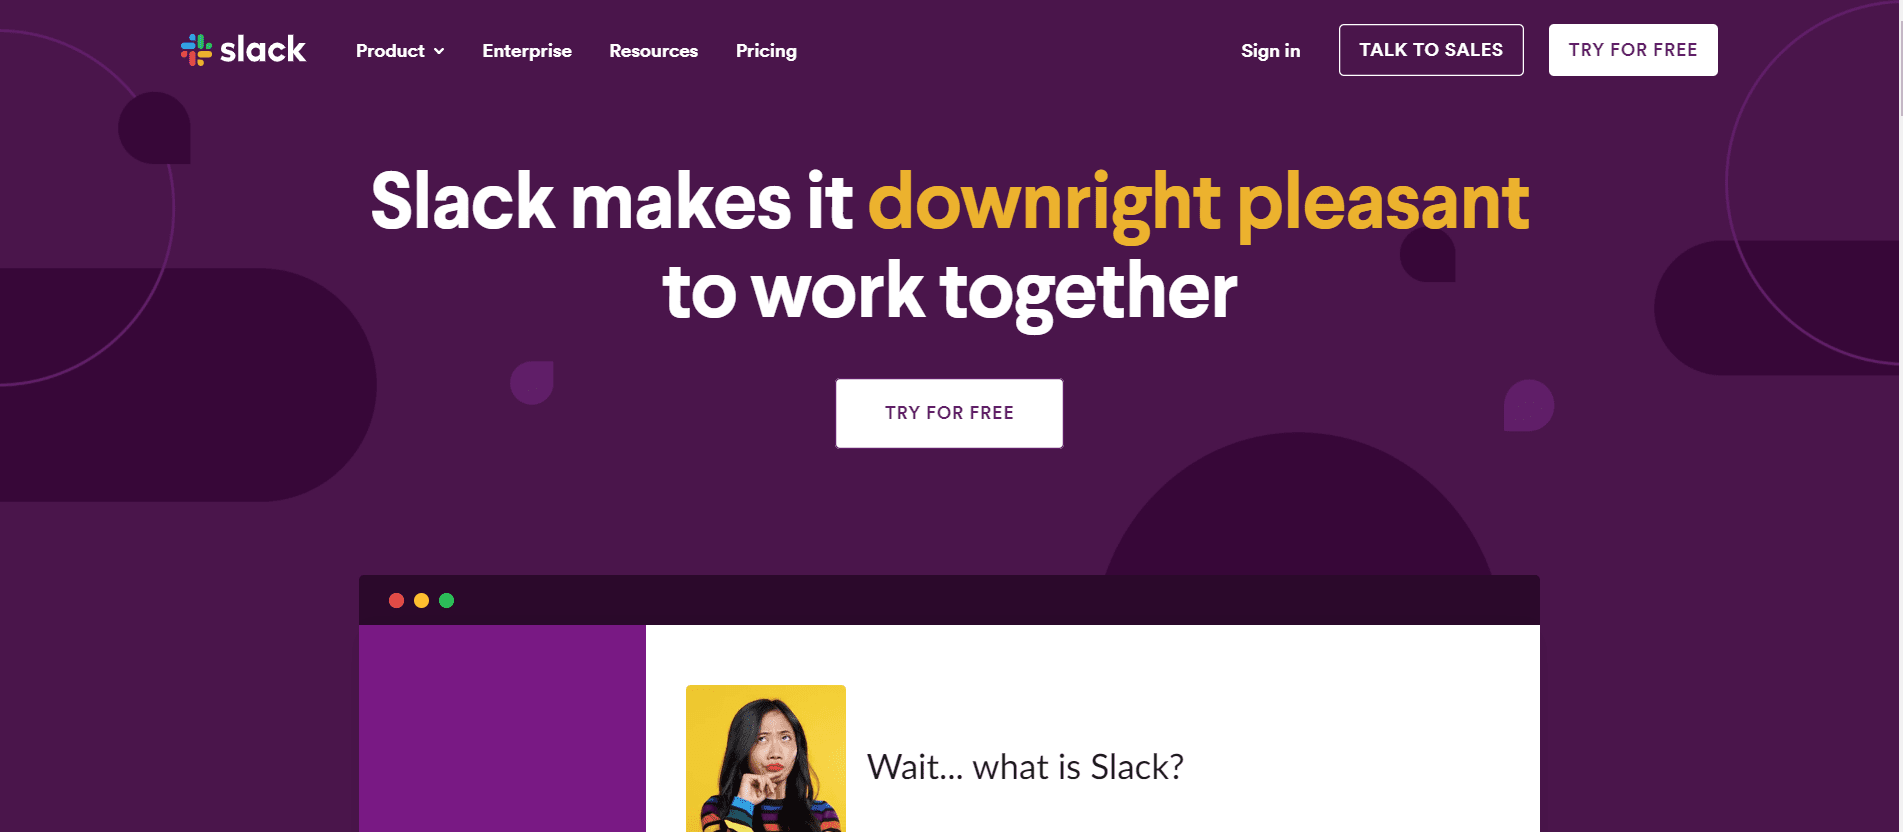 Provide solutions to your customer problems - Slack